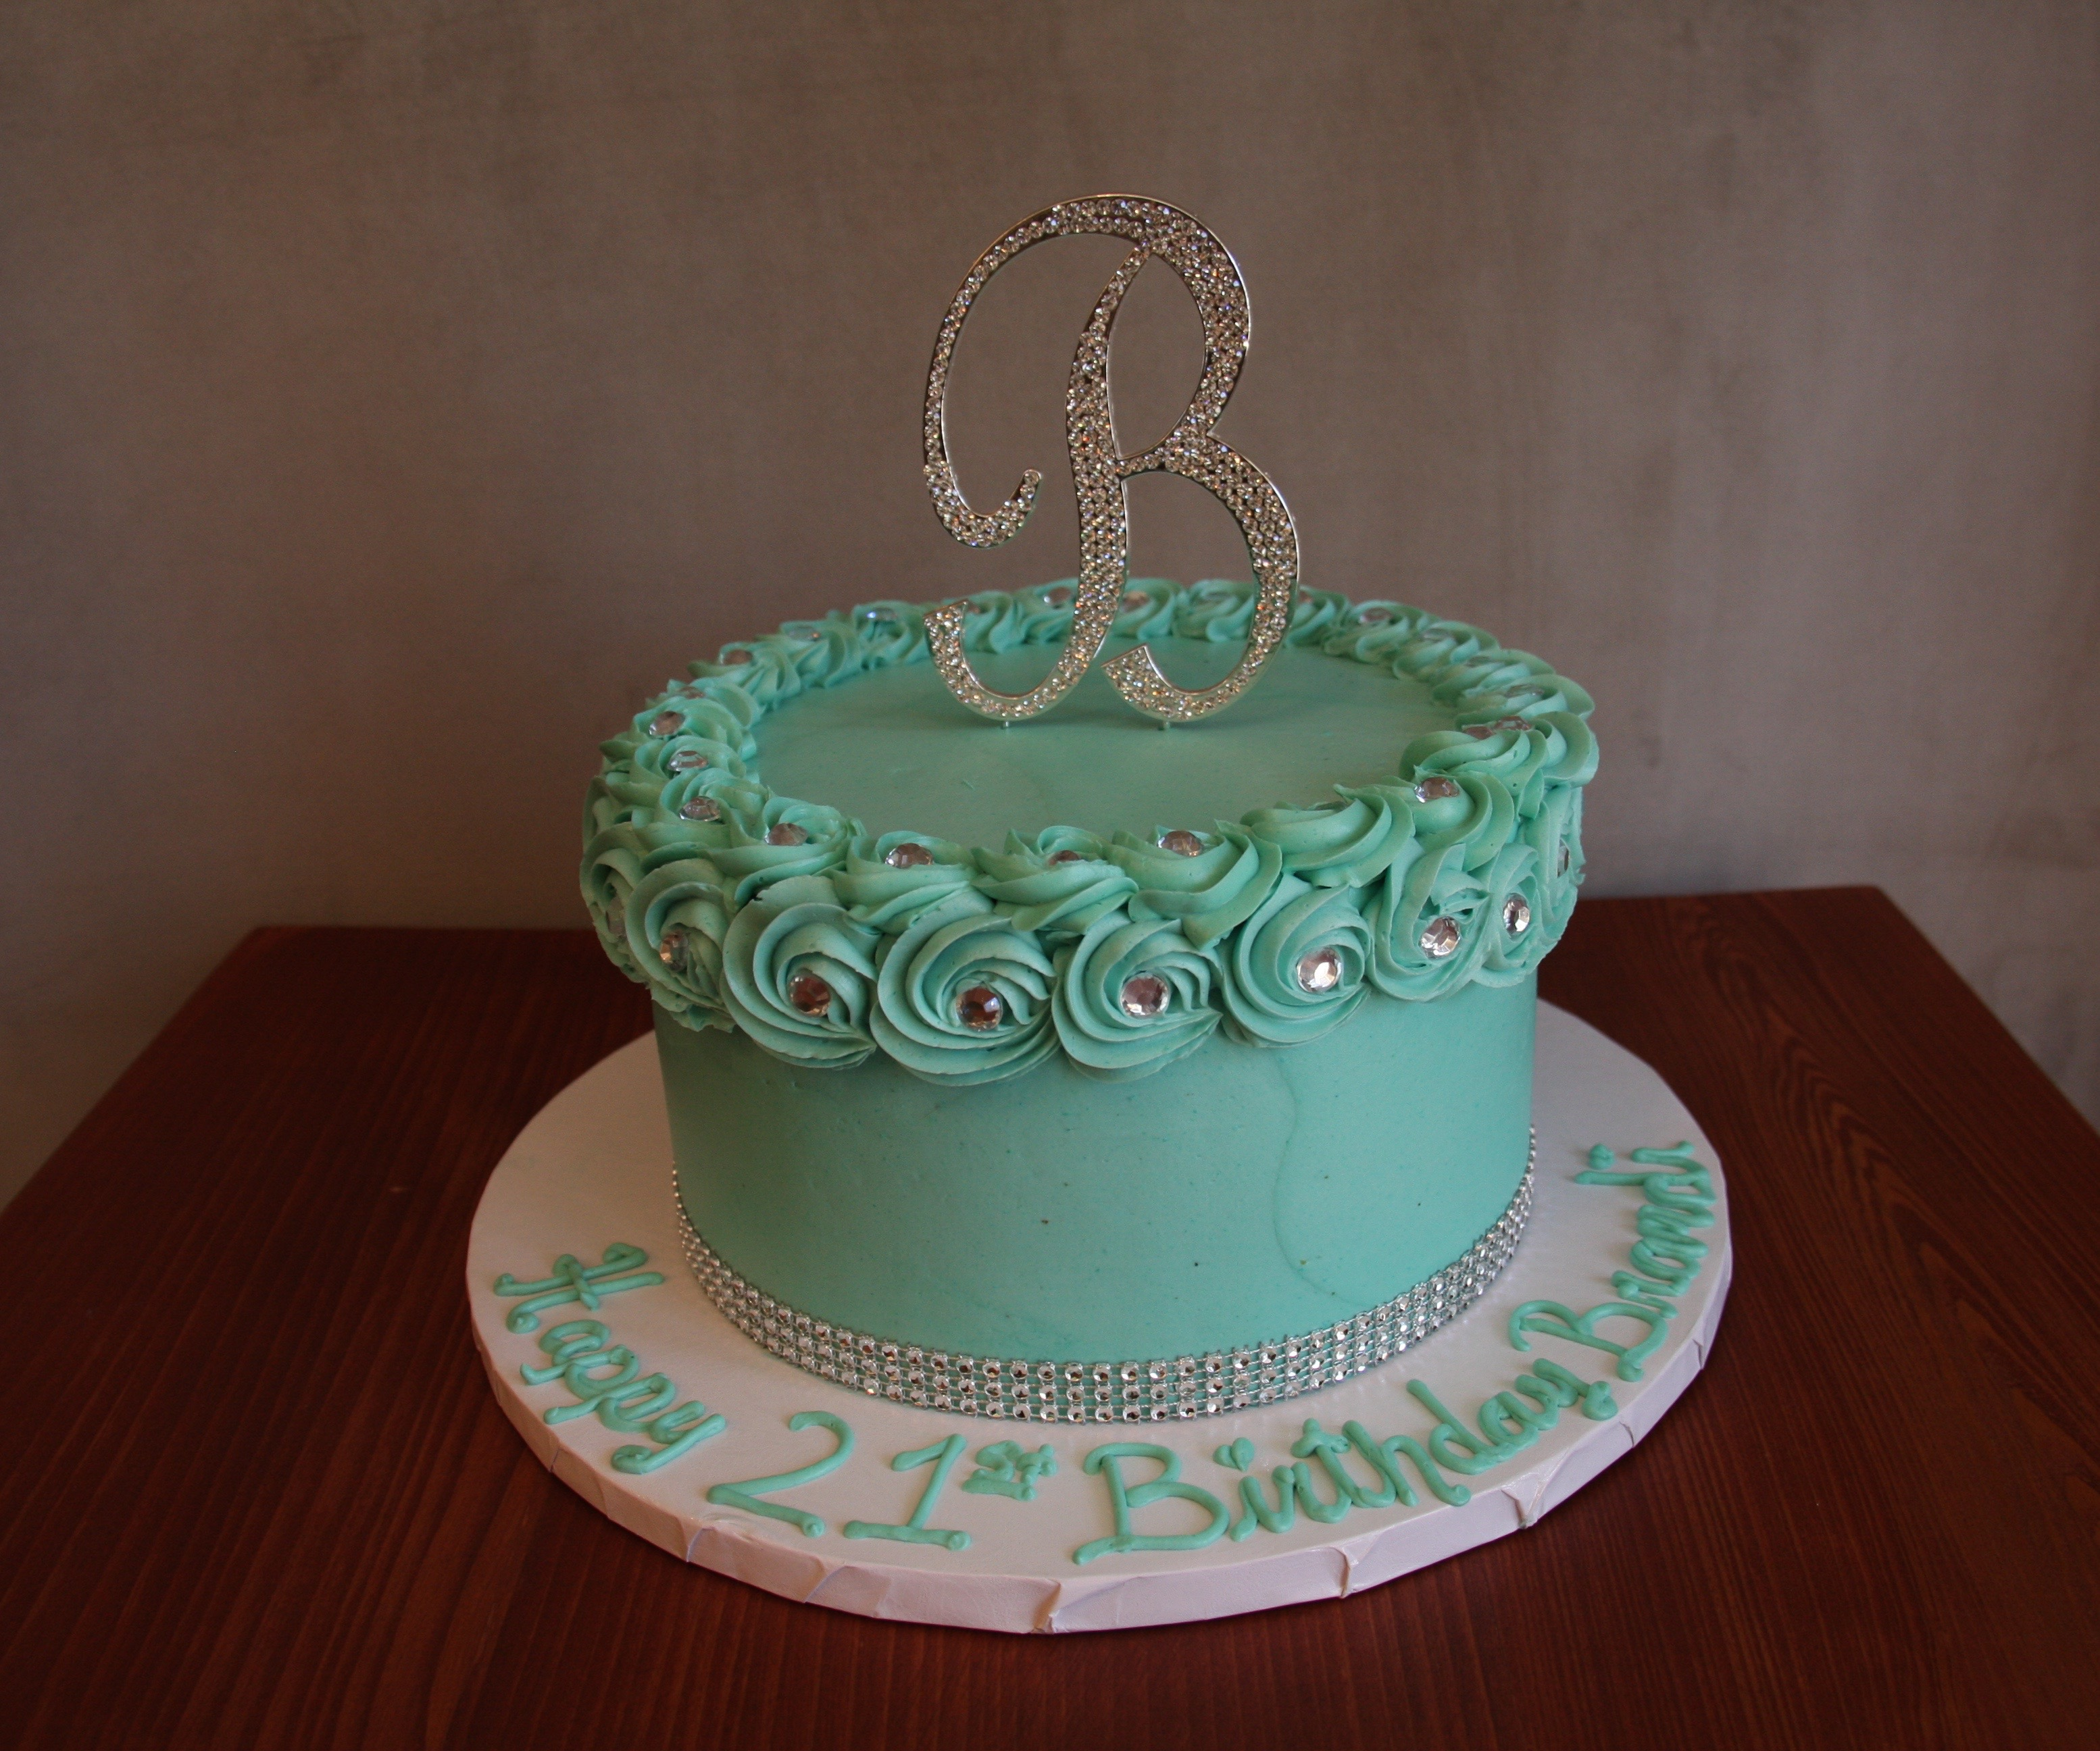 Tiffany Blue Birthday